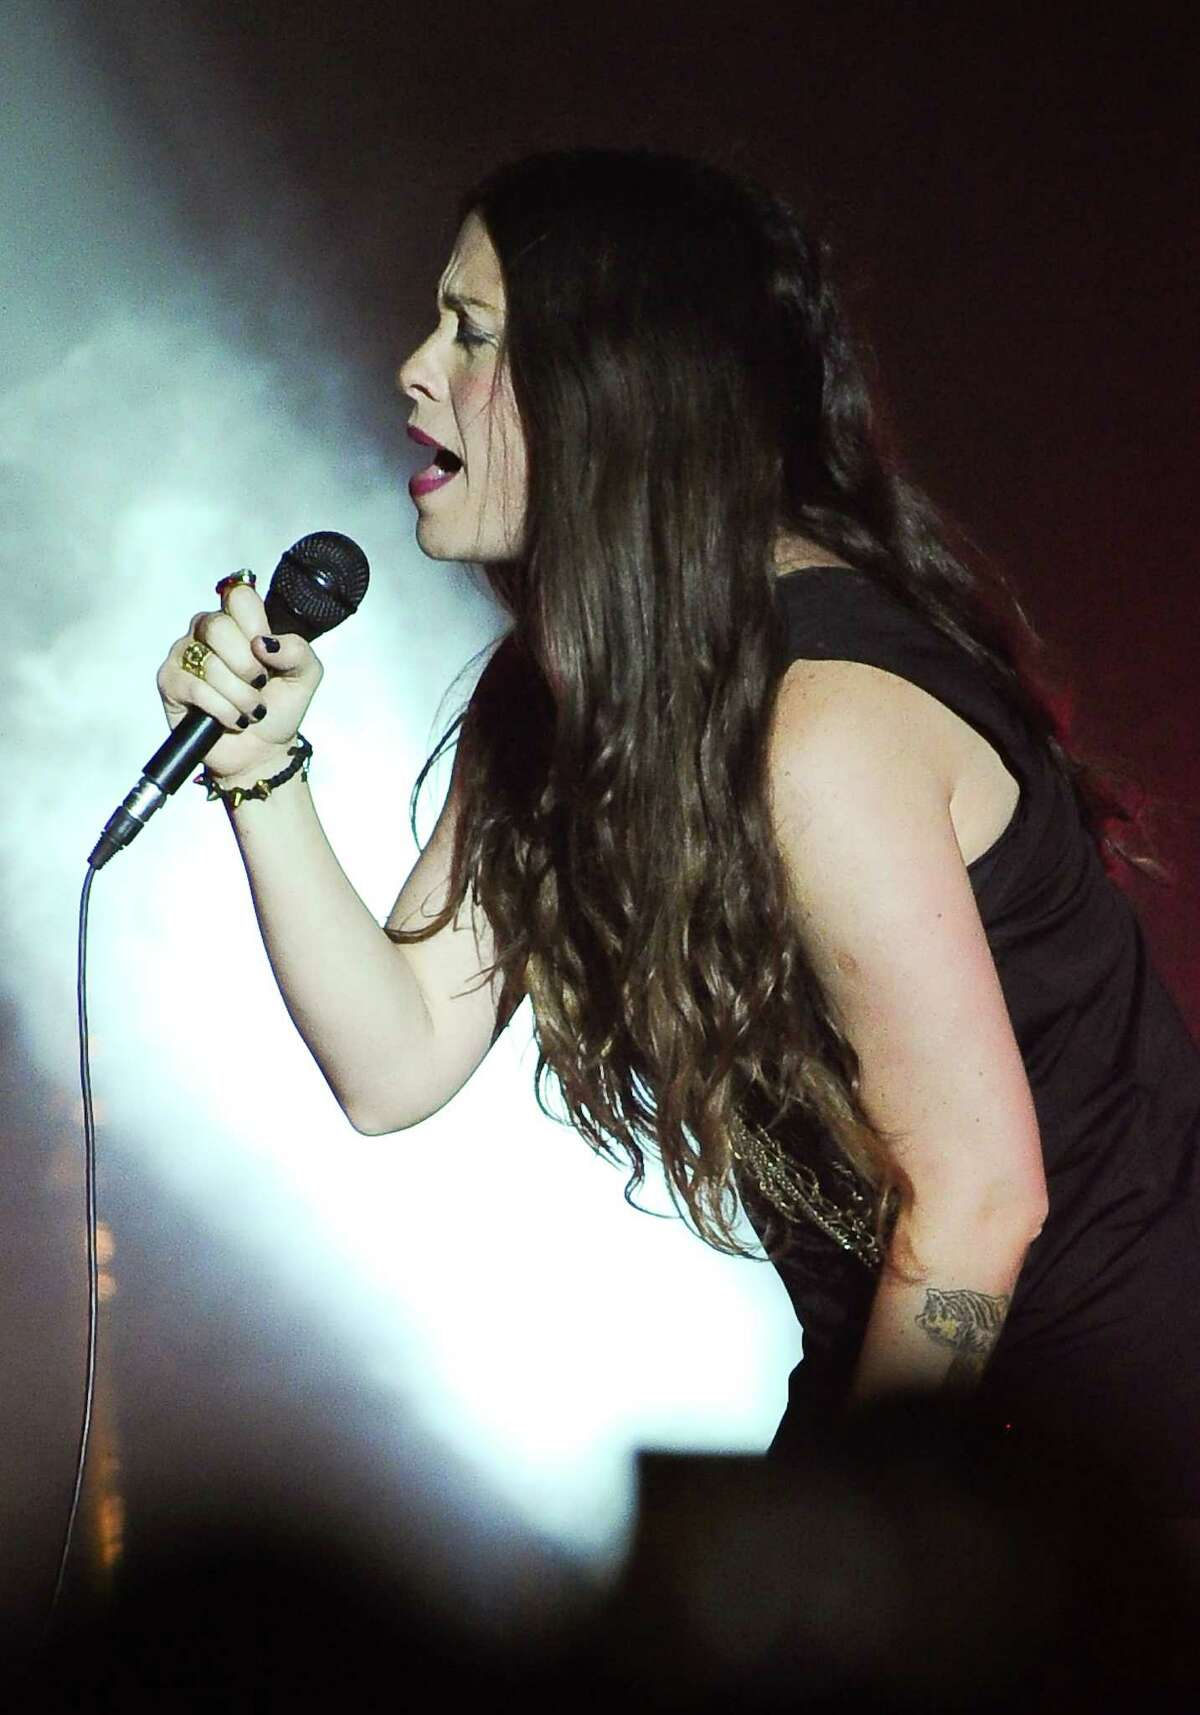 Alanis Morissette performs at The Sound Academy on October 15, 2012 in Toronto, Canada. (Photo by George Pimentel/Getty Images)